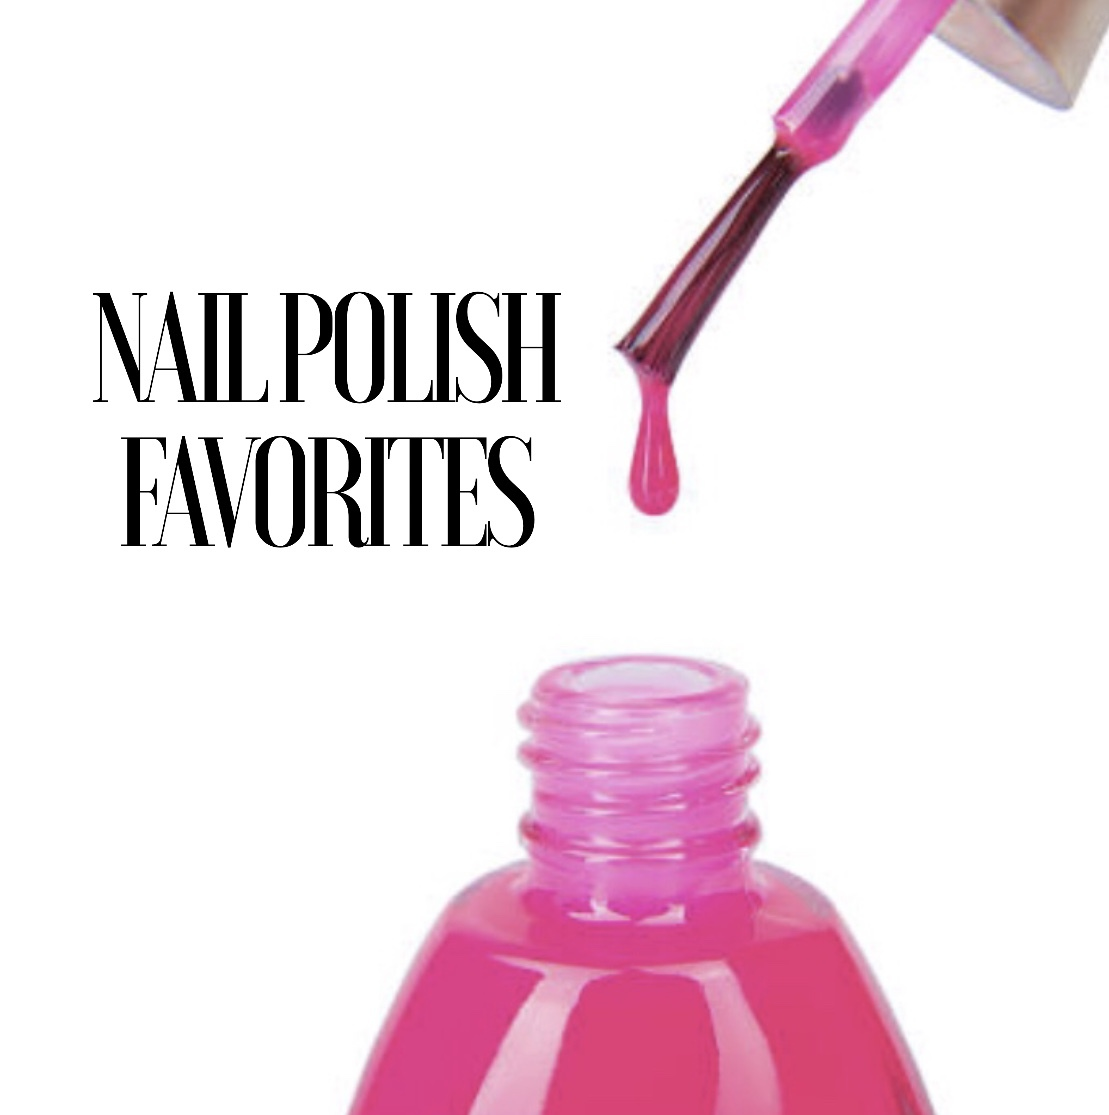 Nail Polish Favorites